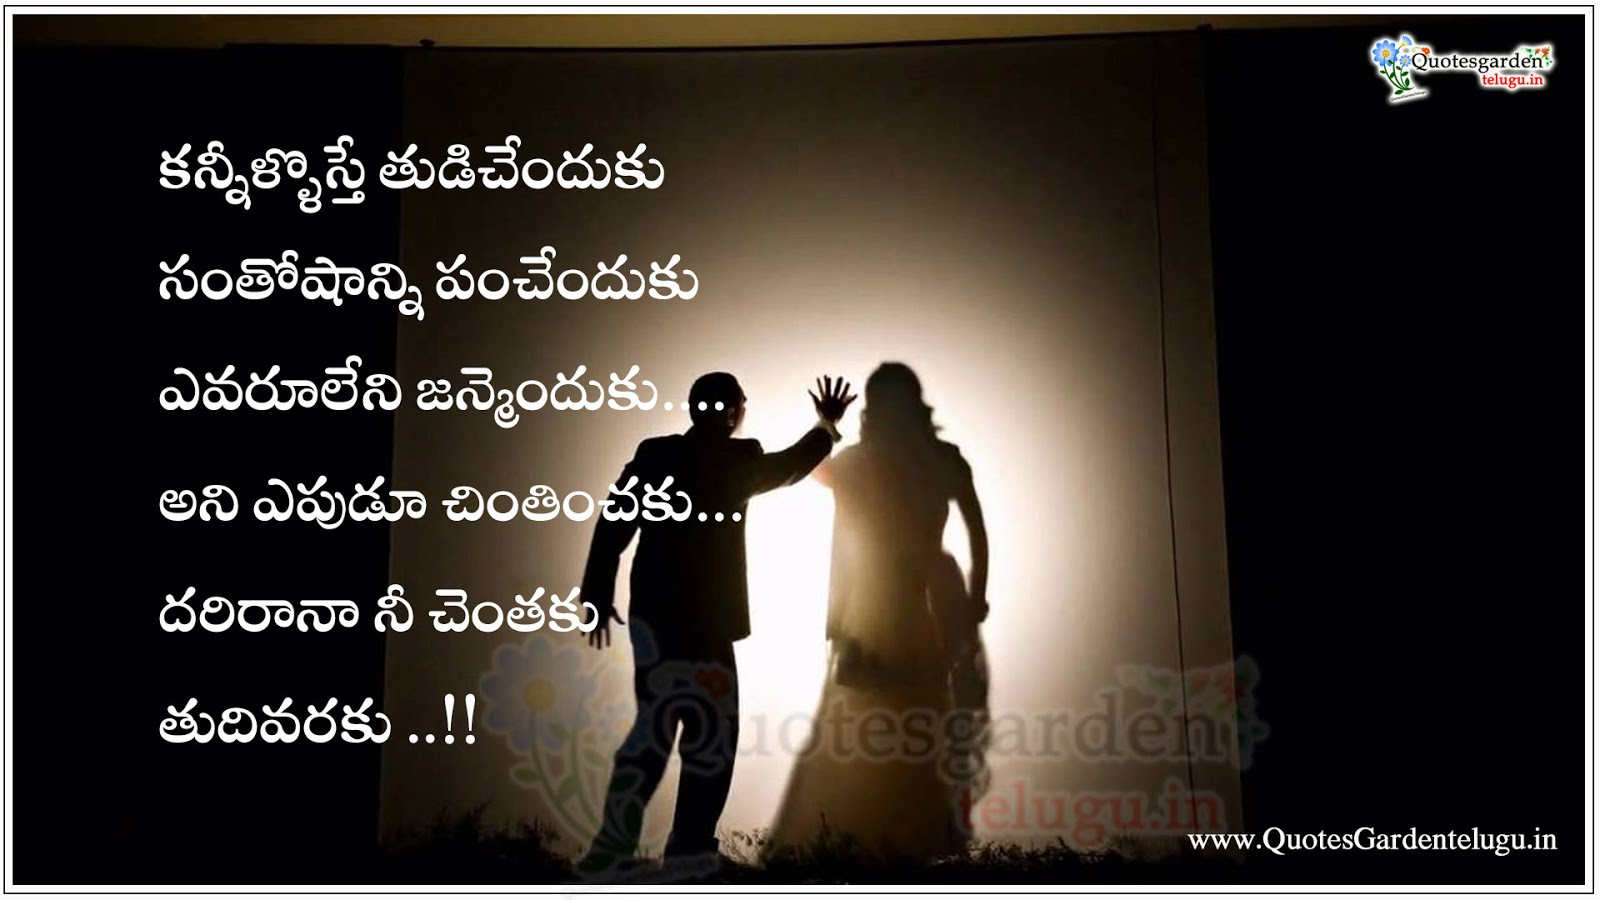 Best Love Quotes For Girlfriend In Telugu : telugu love quotes prema kavitalu QUOTES GARDEN TELUGU Telugu ...